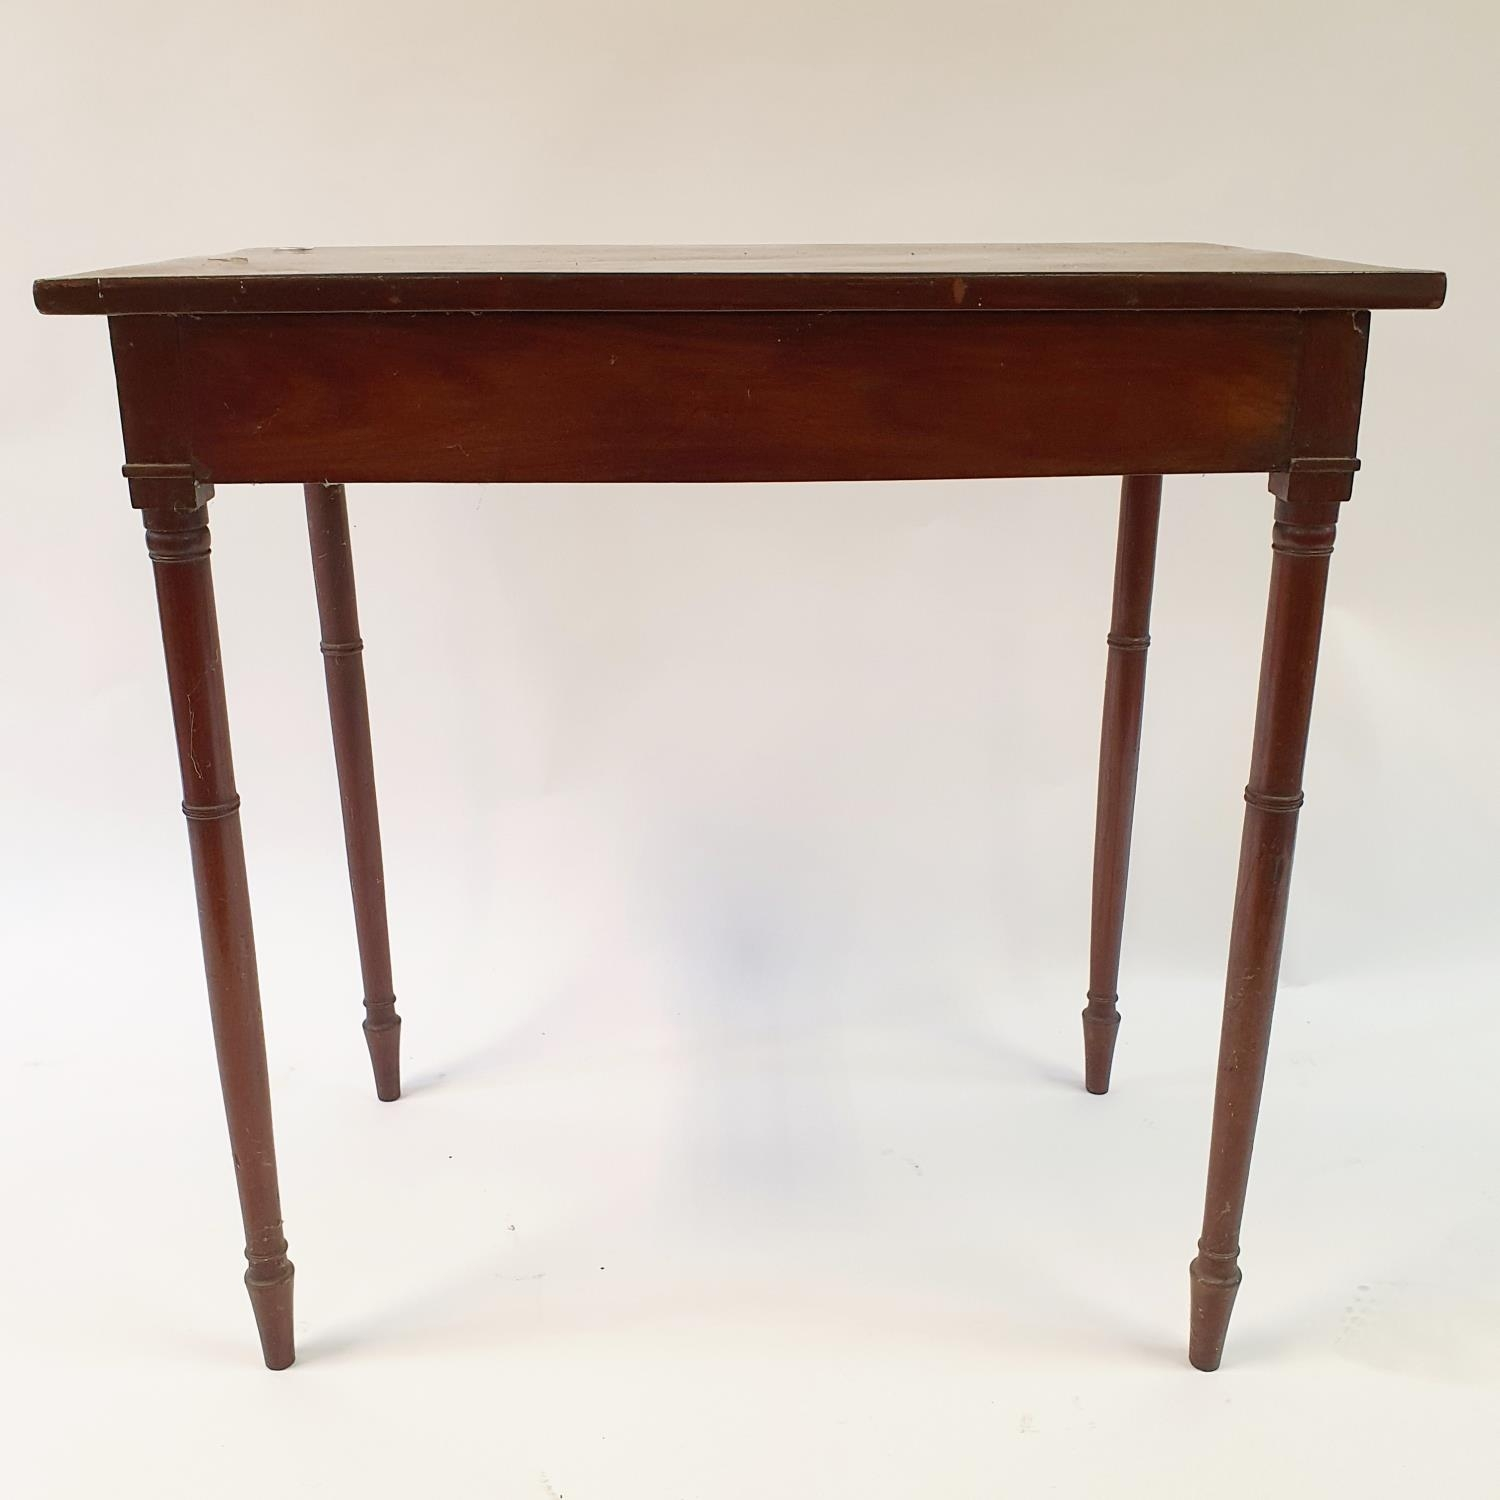 A mahogany side table, 76 cm wide